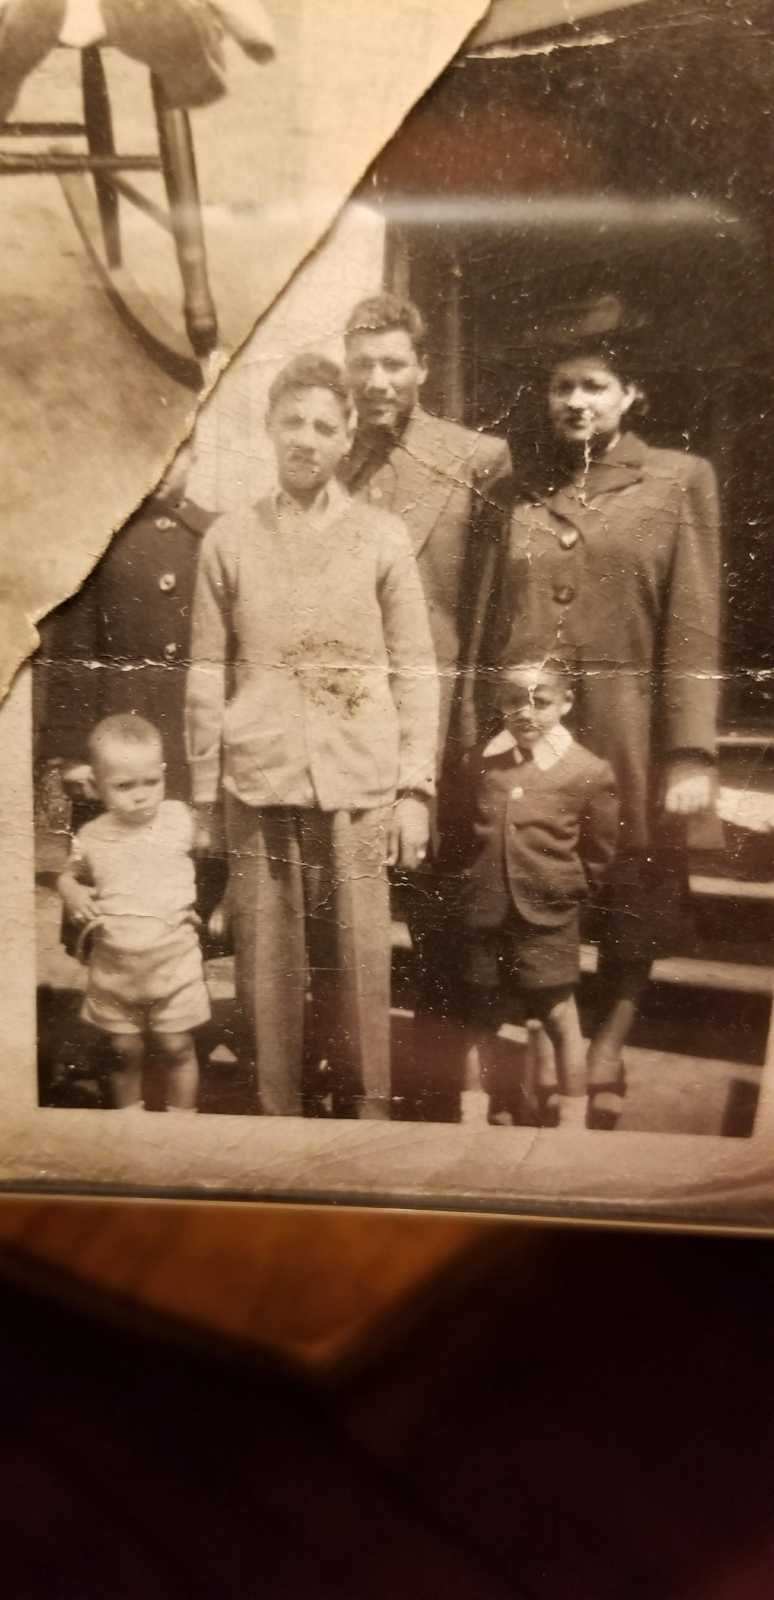 My great grand father, grandfather, his sister, newphews and sibling.